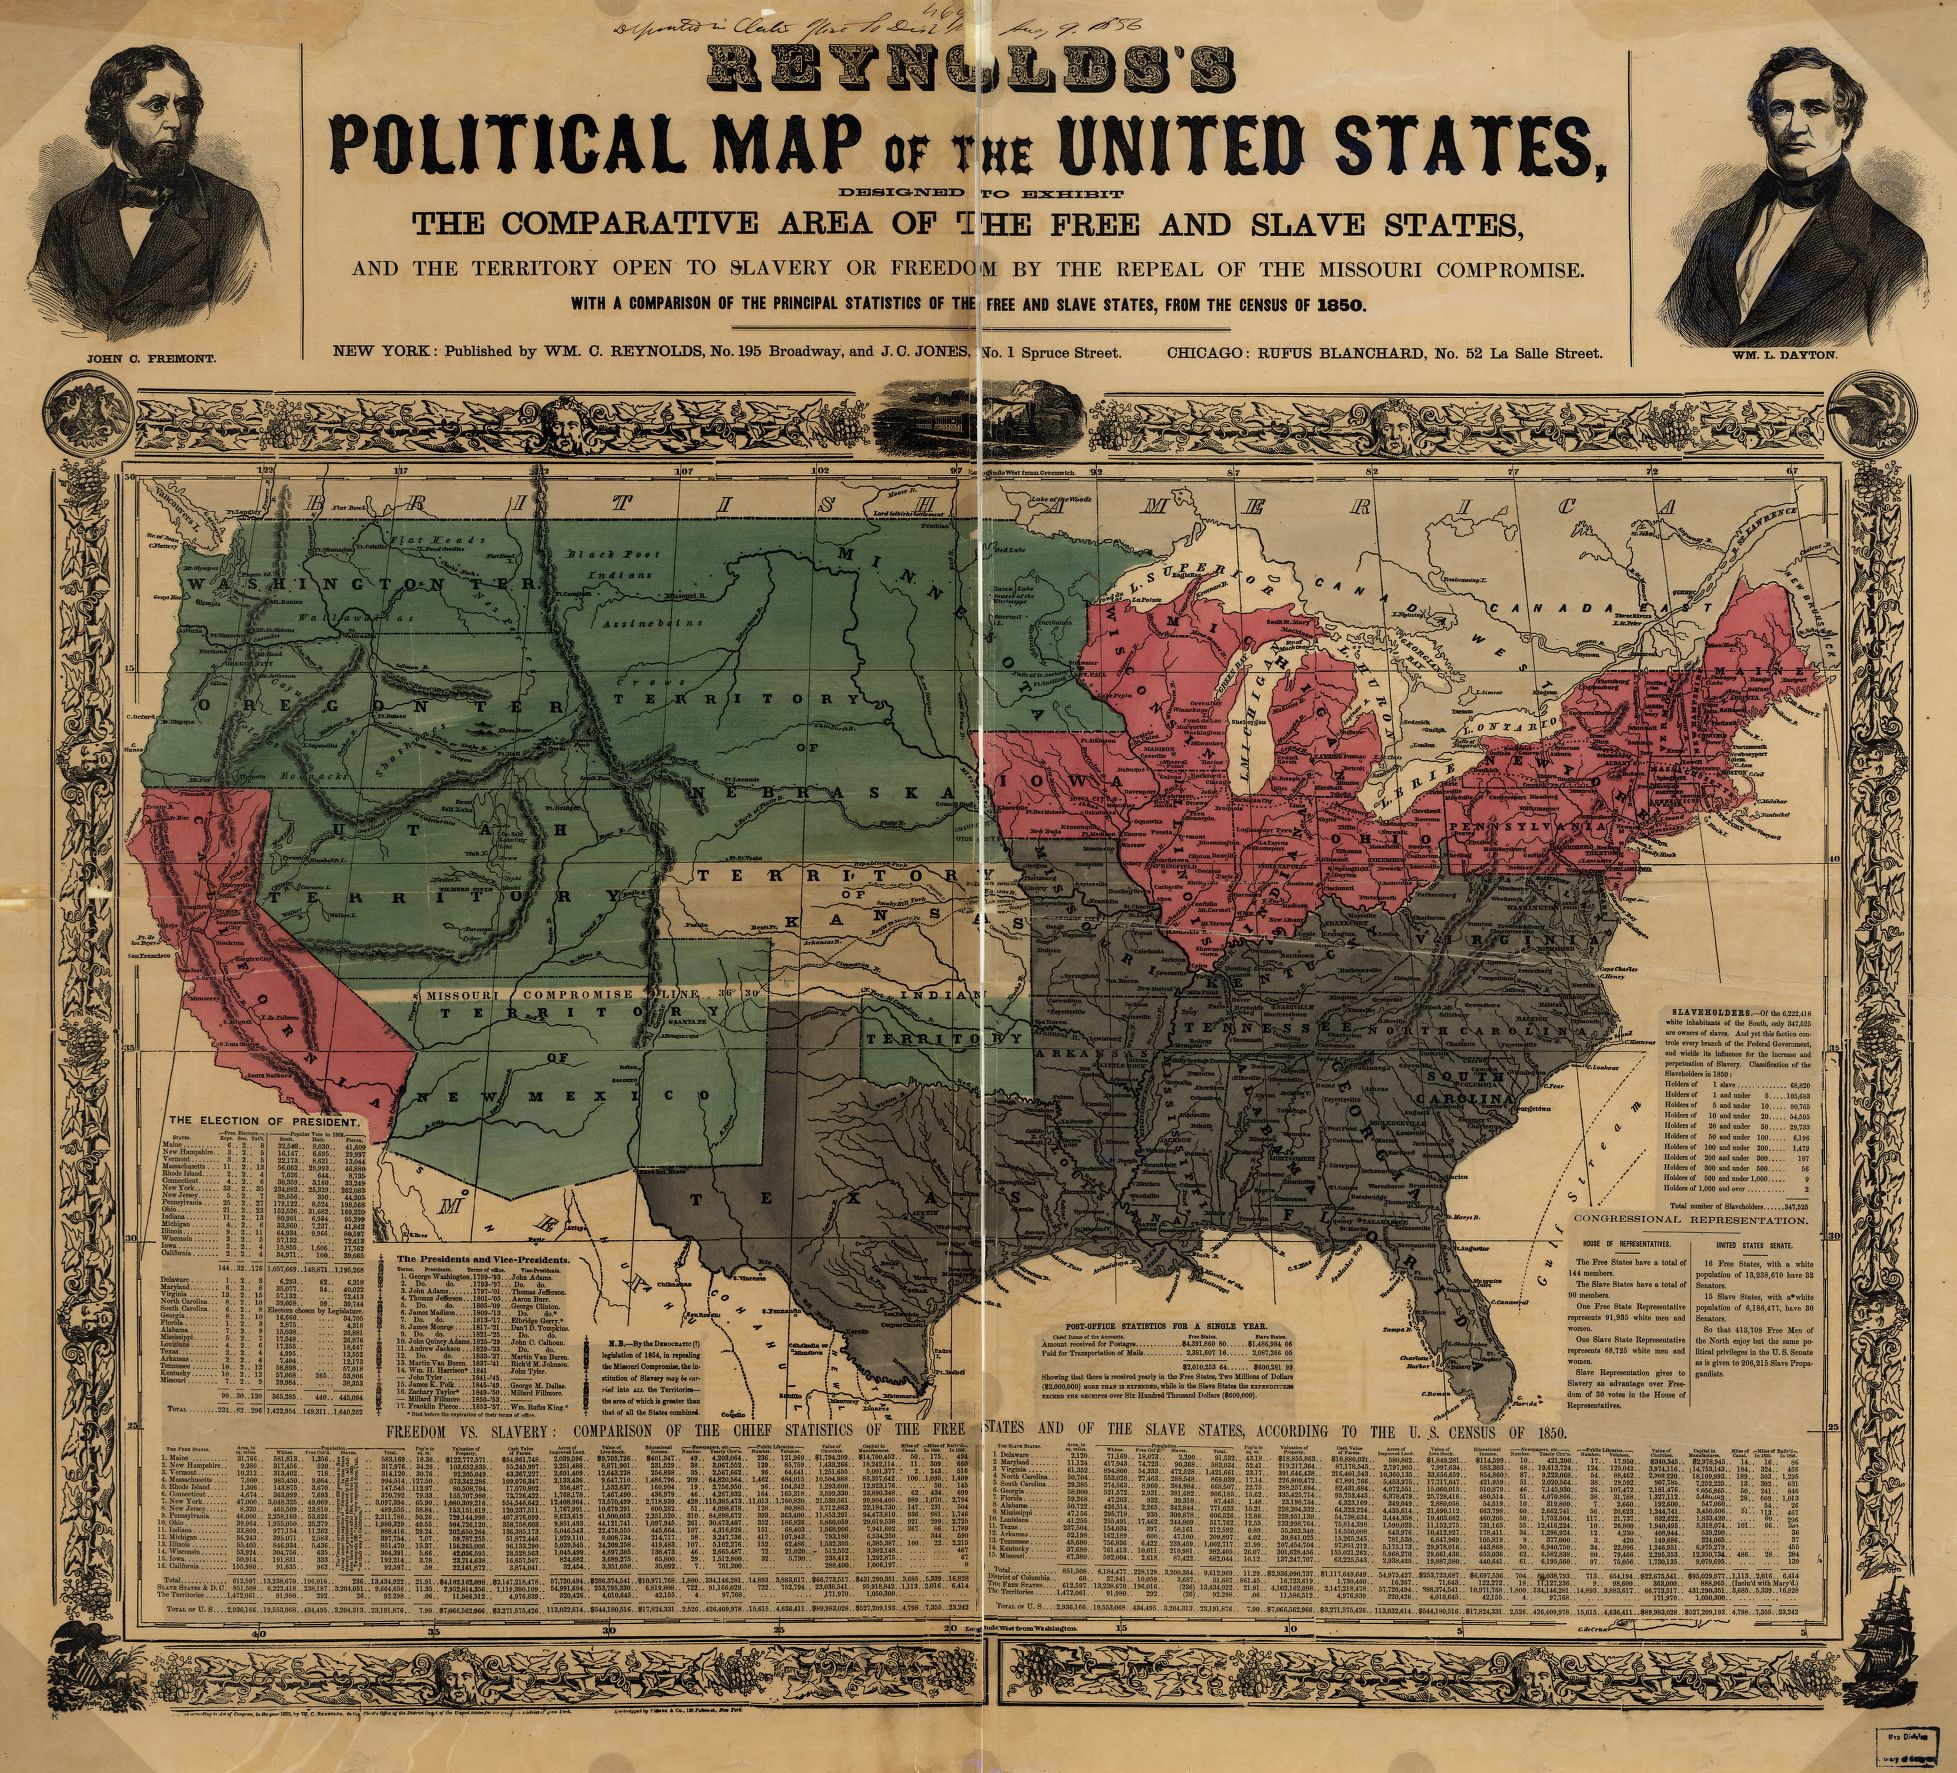 1850 Political Map of the United States on usa map in 1843, usa map in 1860, florida in 1850, new york in 1850, usa map in 1870, california in 1850, usa map in 1890, statue of liberty in 1850, usa map in 1849, washington in 1850, states in 1850, usa map in 1830, louisiana in 1850, usa map in 1853, texas in 1850, usa map in 1840, usa map in 1900, pennsylvania in 1850, usa map in 1854,